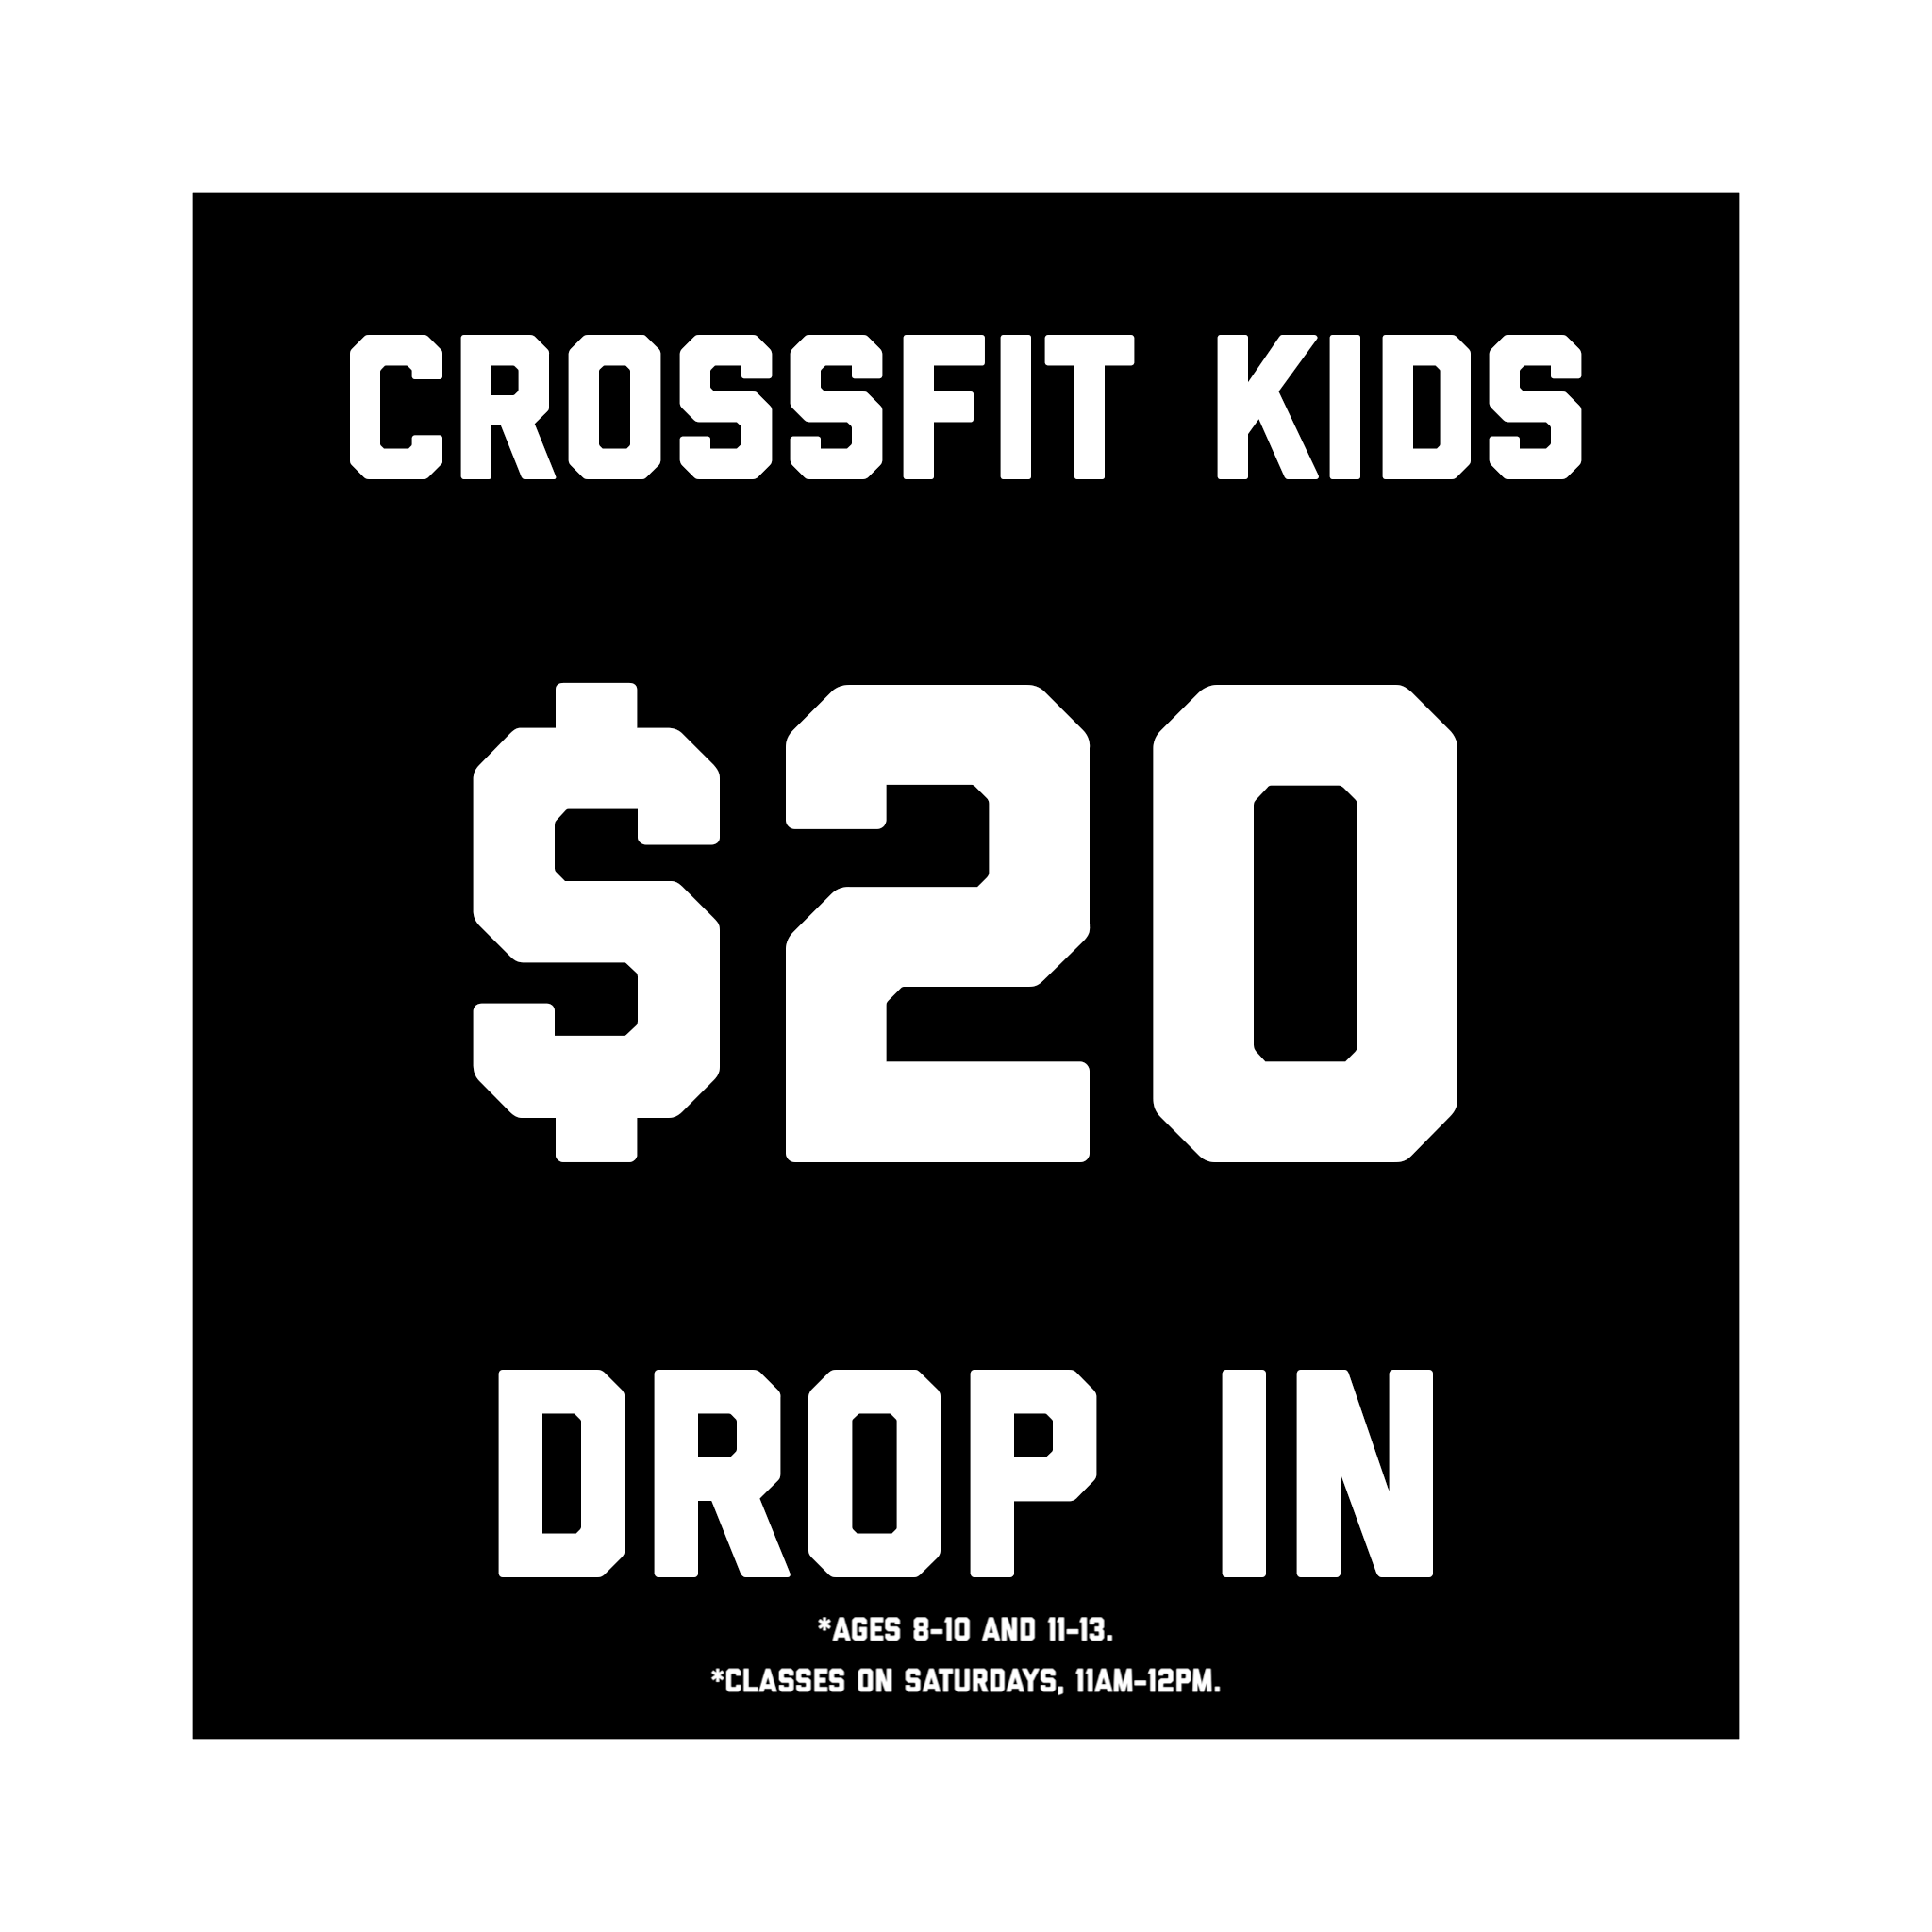 crossfitKidsBlock-20.png